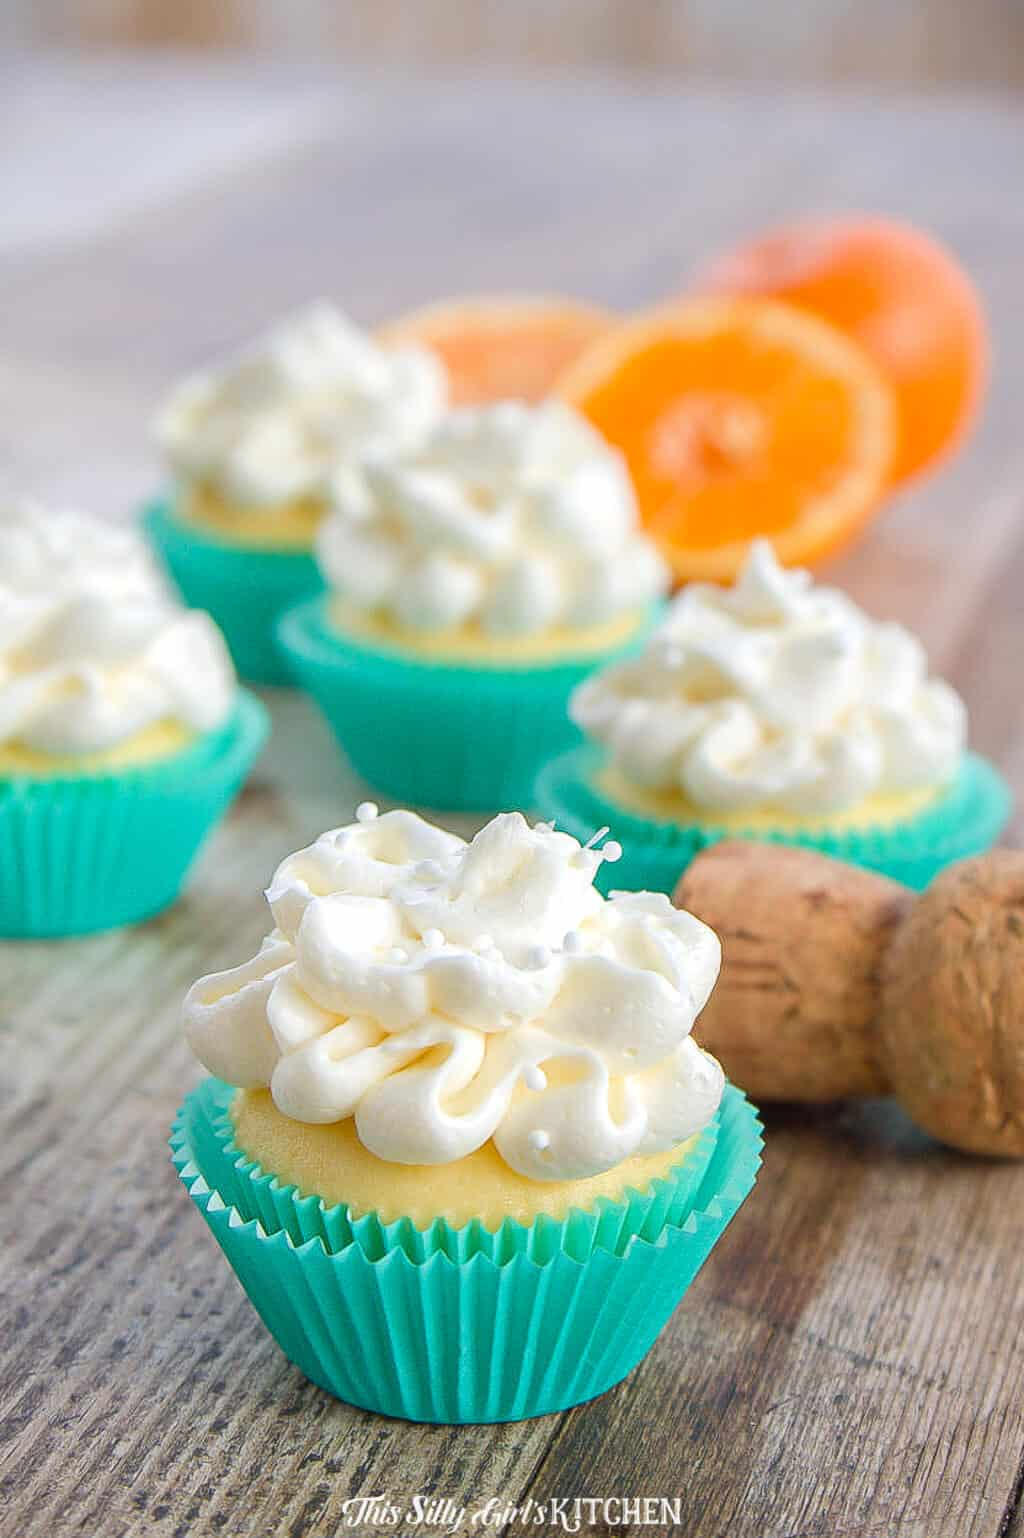 Mini Mimosa Cupcakes, bite-sized cupcakes infused with fresh squeezed orange juice and topped with fluffy champagne buttercream frosting! #recipe from thissillygirlskitchen.com #cupcakes #minicupcakes #mimosa #mimosacupcakes #orange #champange #buttercream